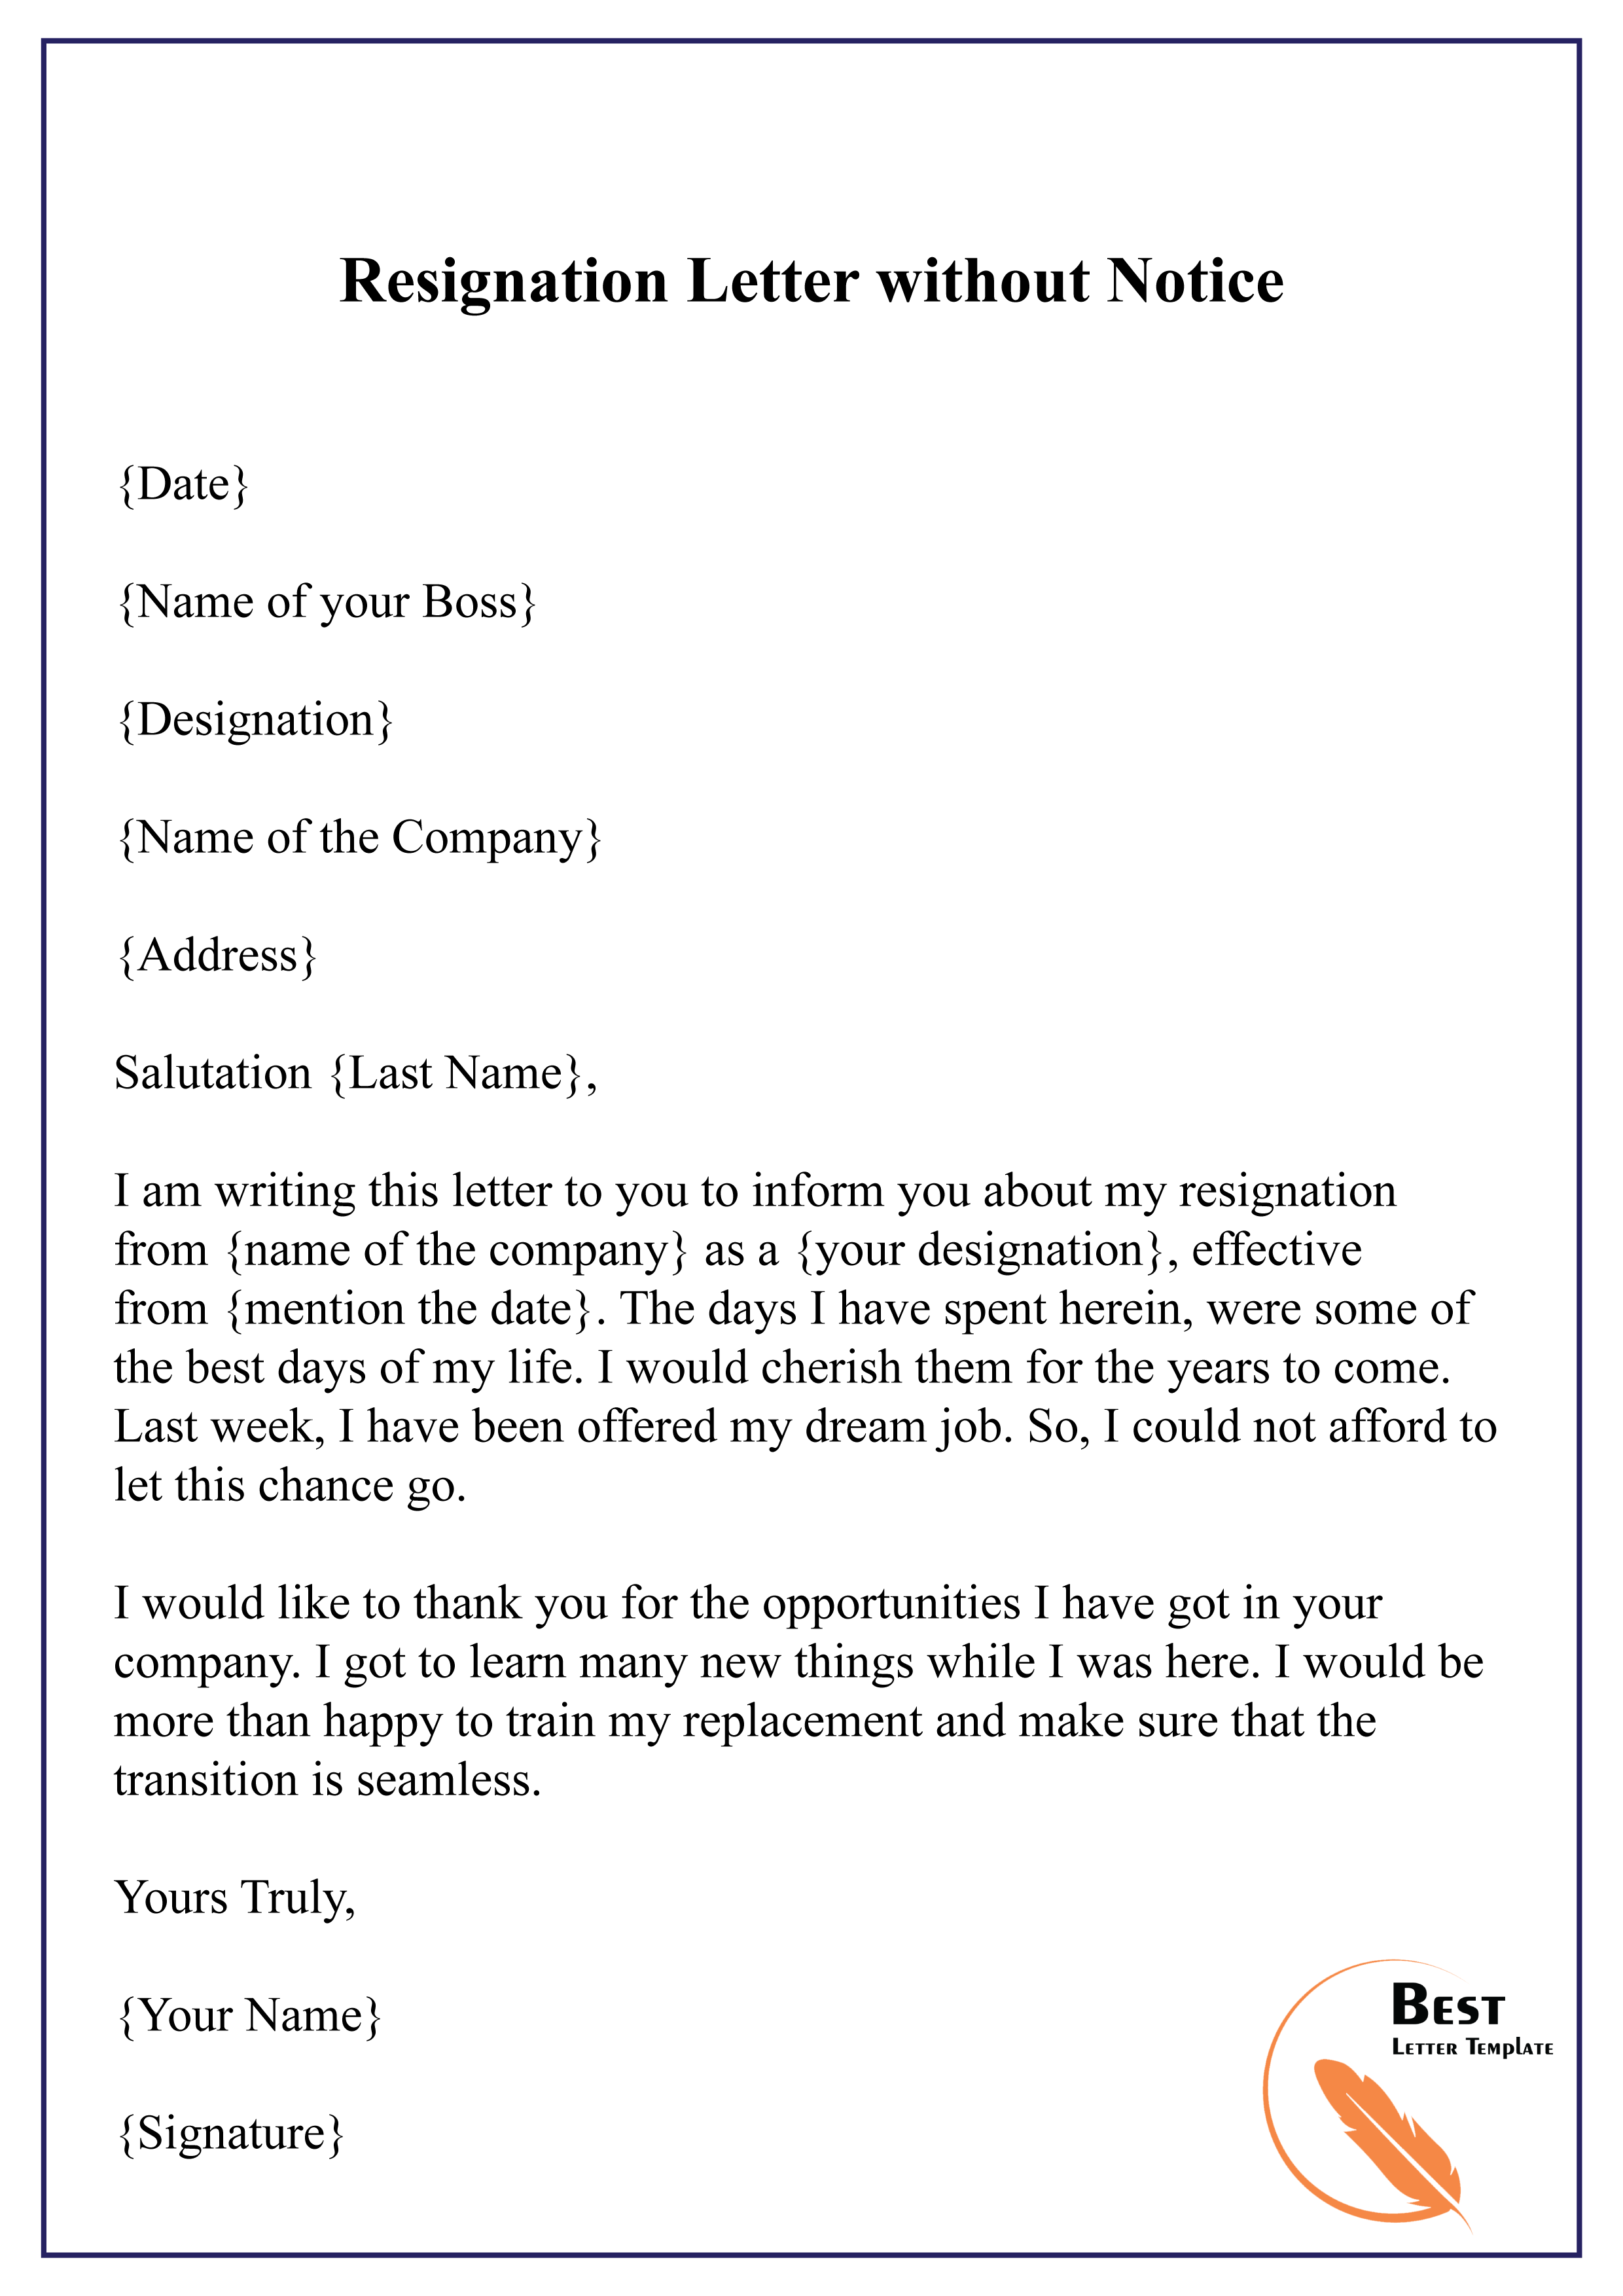 best resignation letter without notice  sample